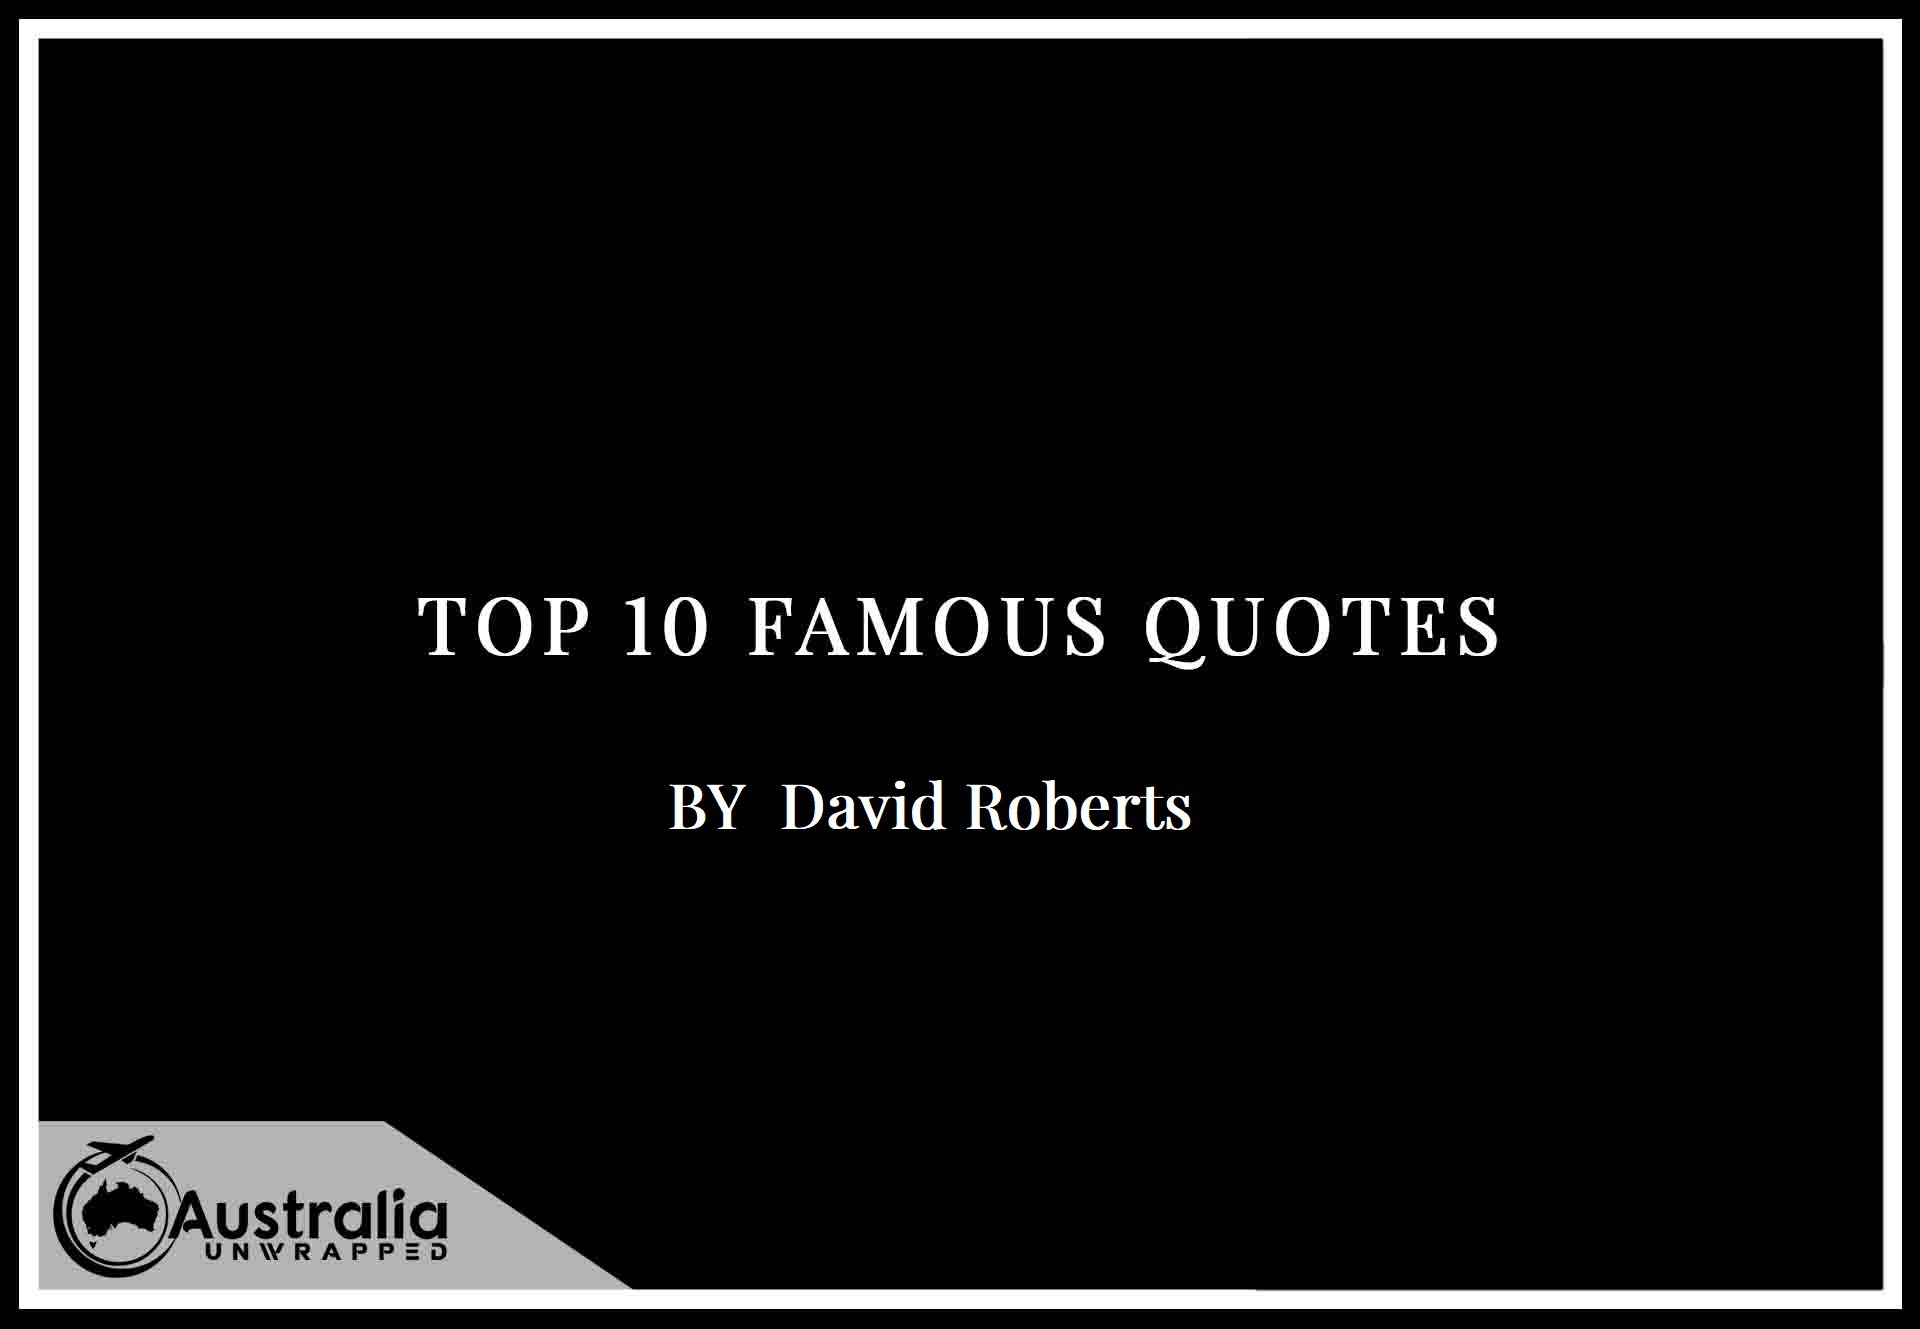 Top 10 Famous Quotes by Author David Roberts